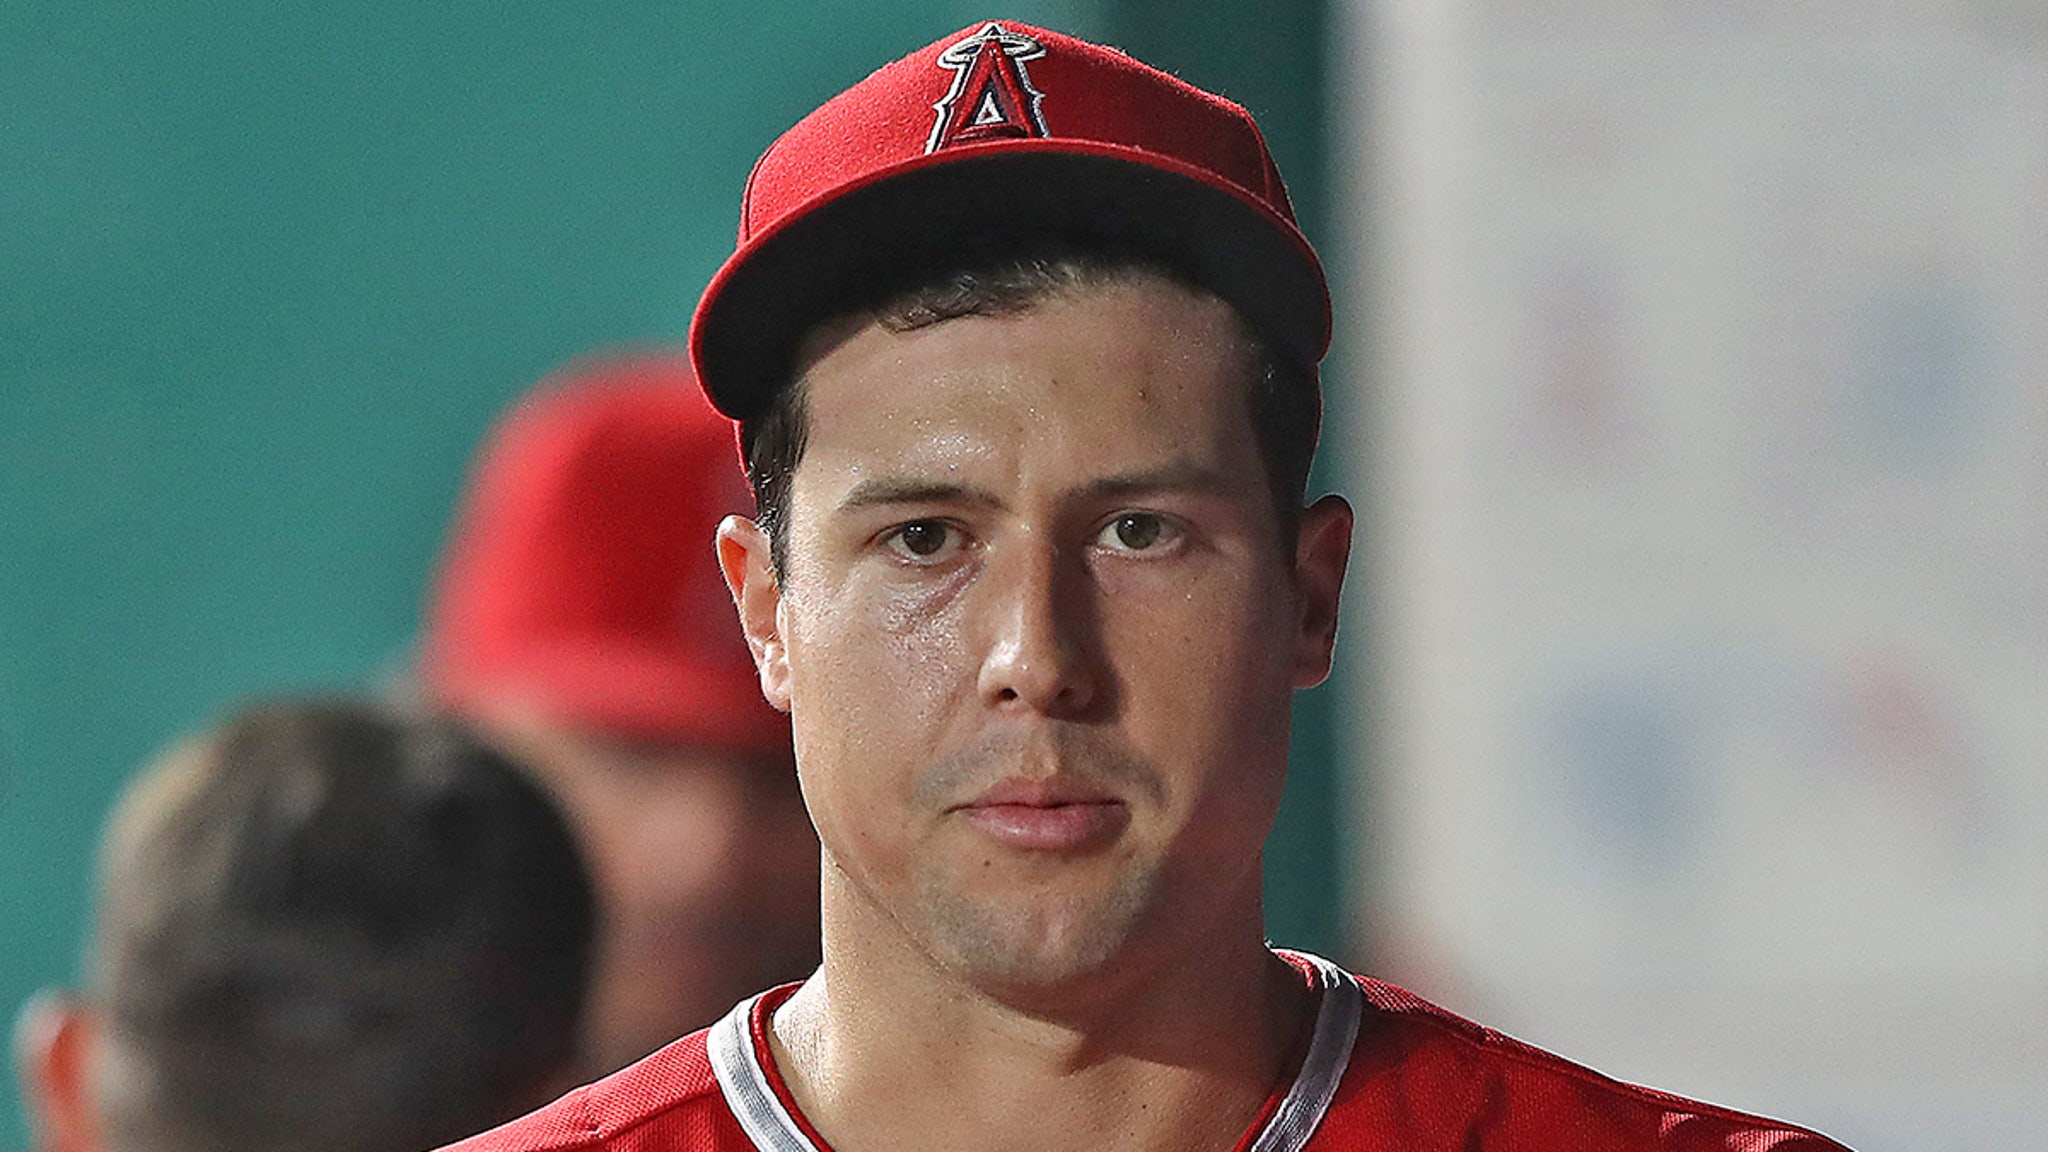 Tyler Skaggs Death Case, Grand Jury Indicts Ex-Angels Employee Over Pills